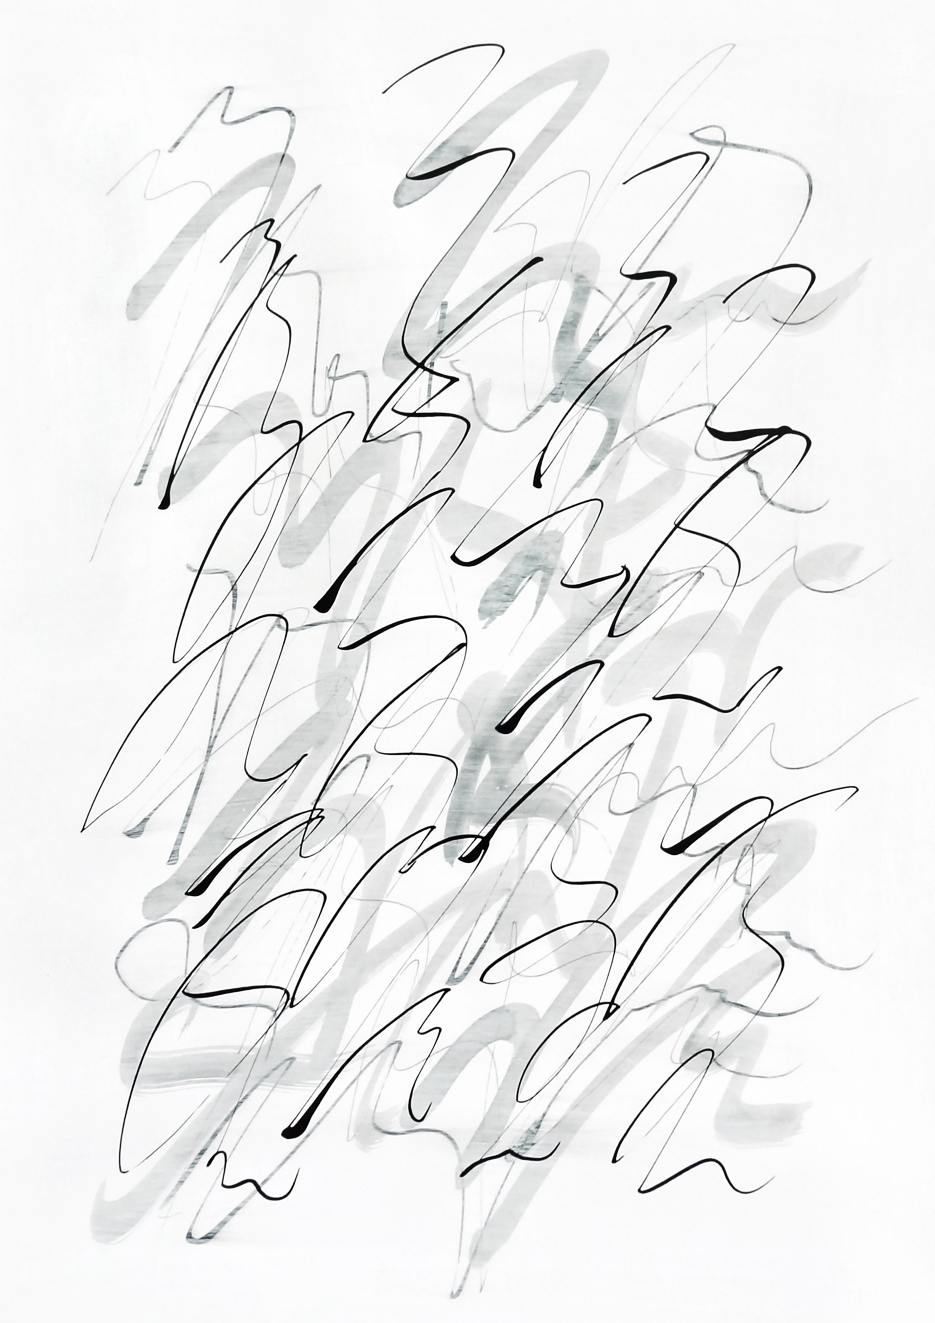 Untitled, 2019 calligraphy ink on paper 42,0 x 29,7 cm (32-19)